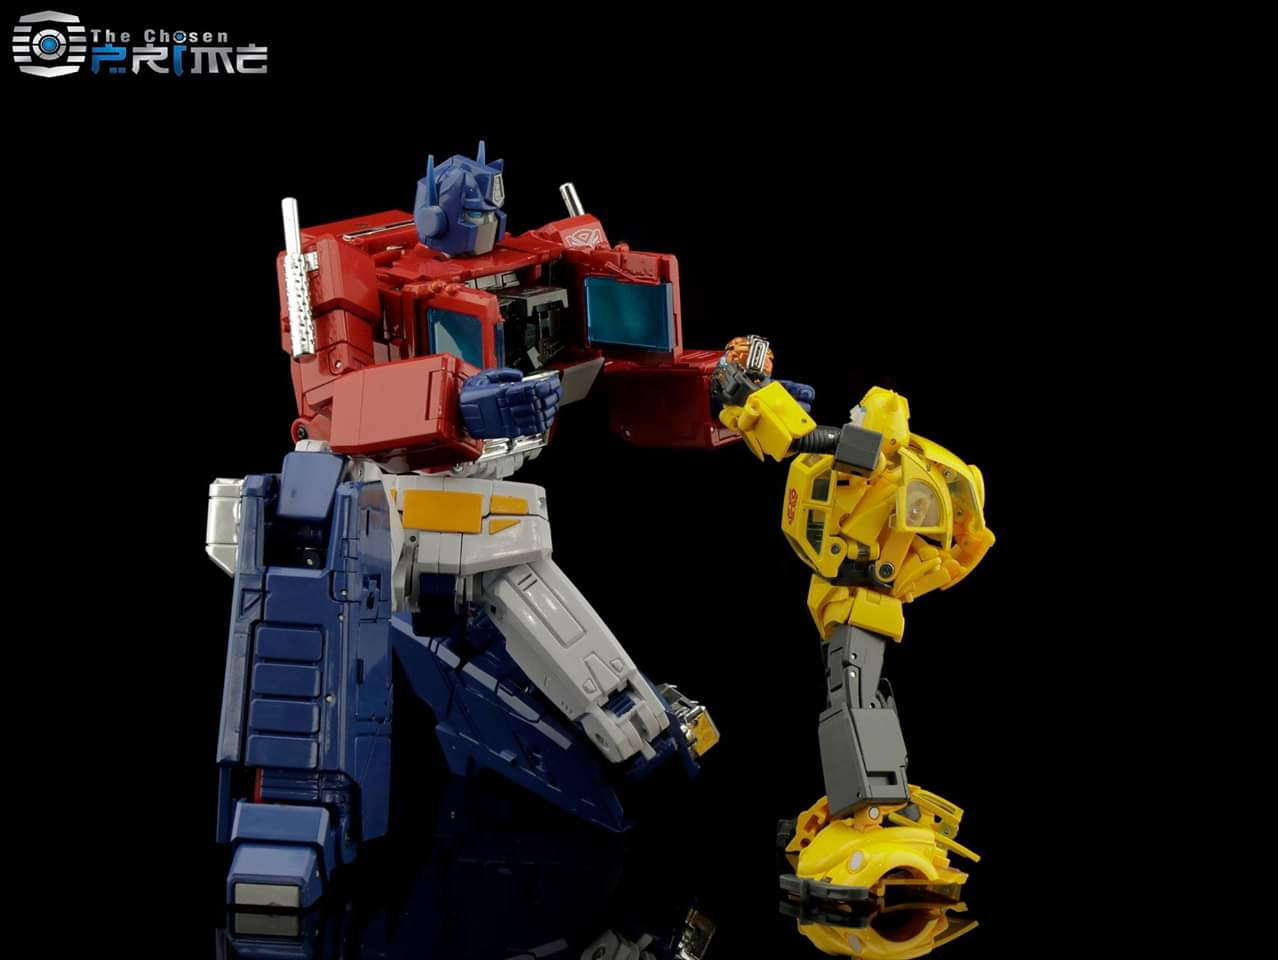 [Masterpiece] MP-45 Bumblebee/Bourdon v2.0 - Page 2 UFAQKlrC_o